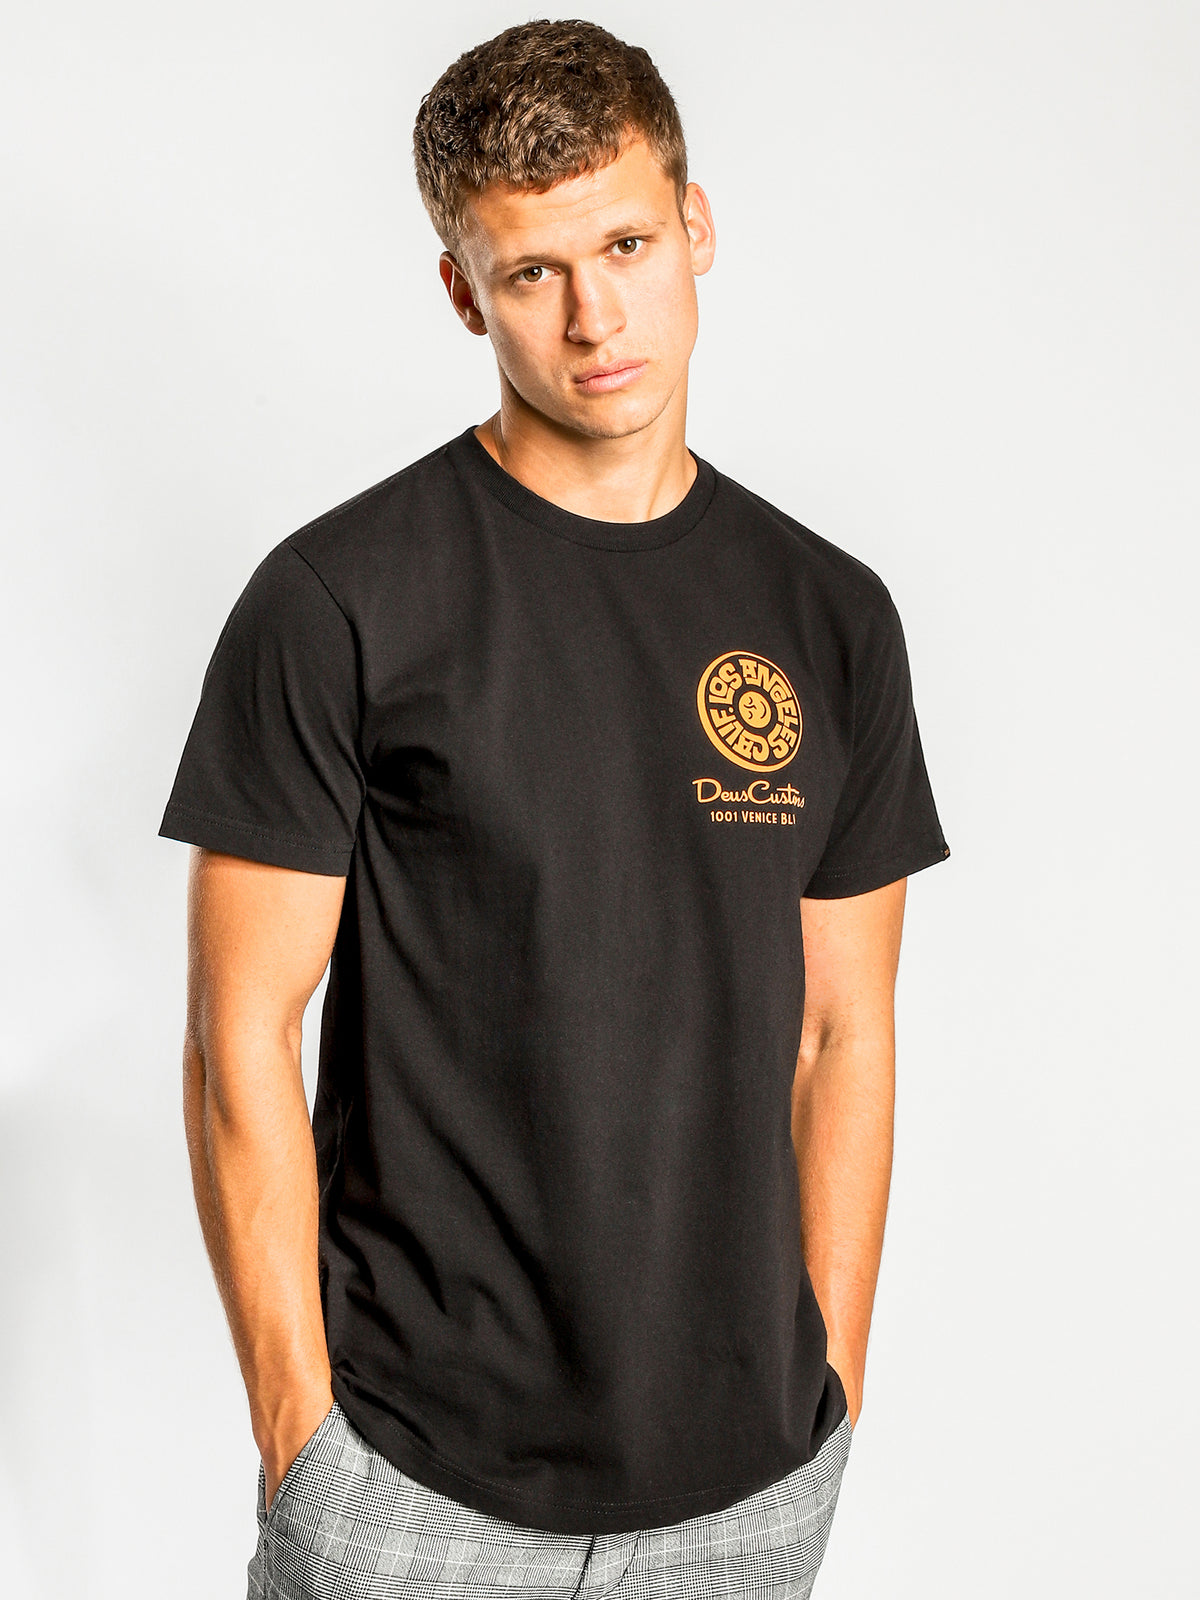 Venice Address T-Shirt in Black